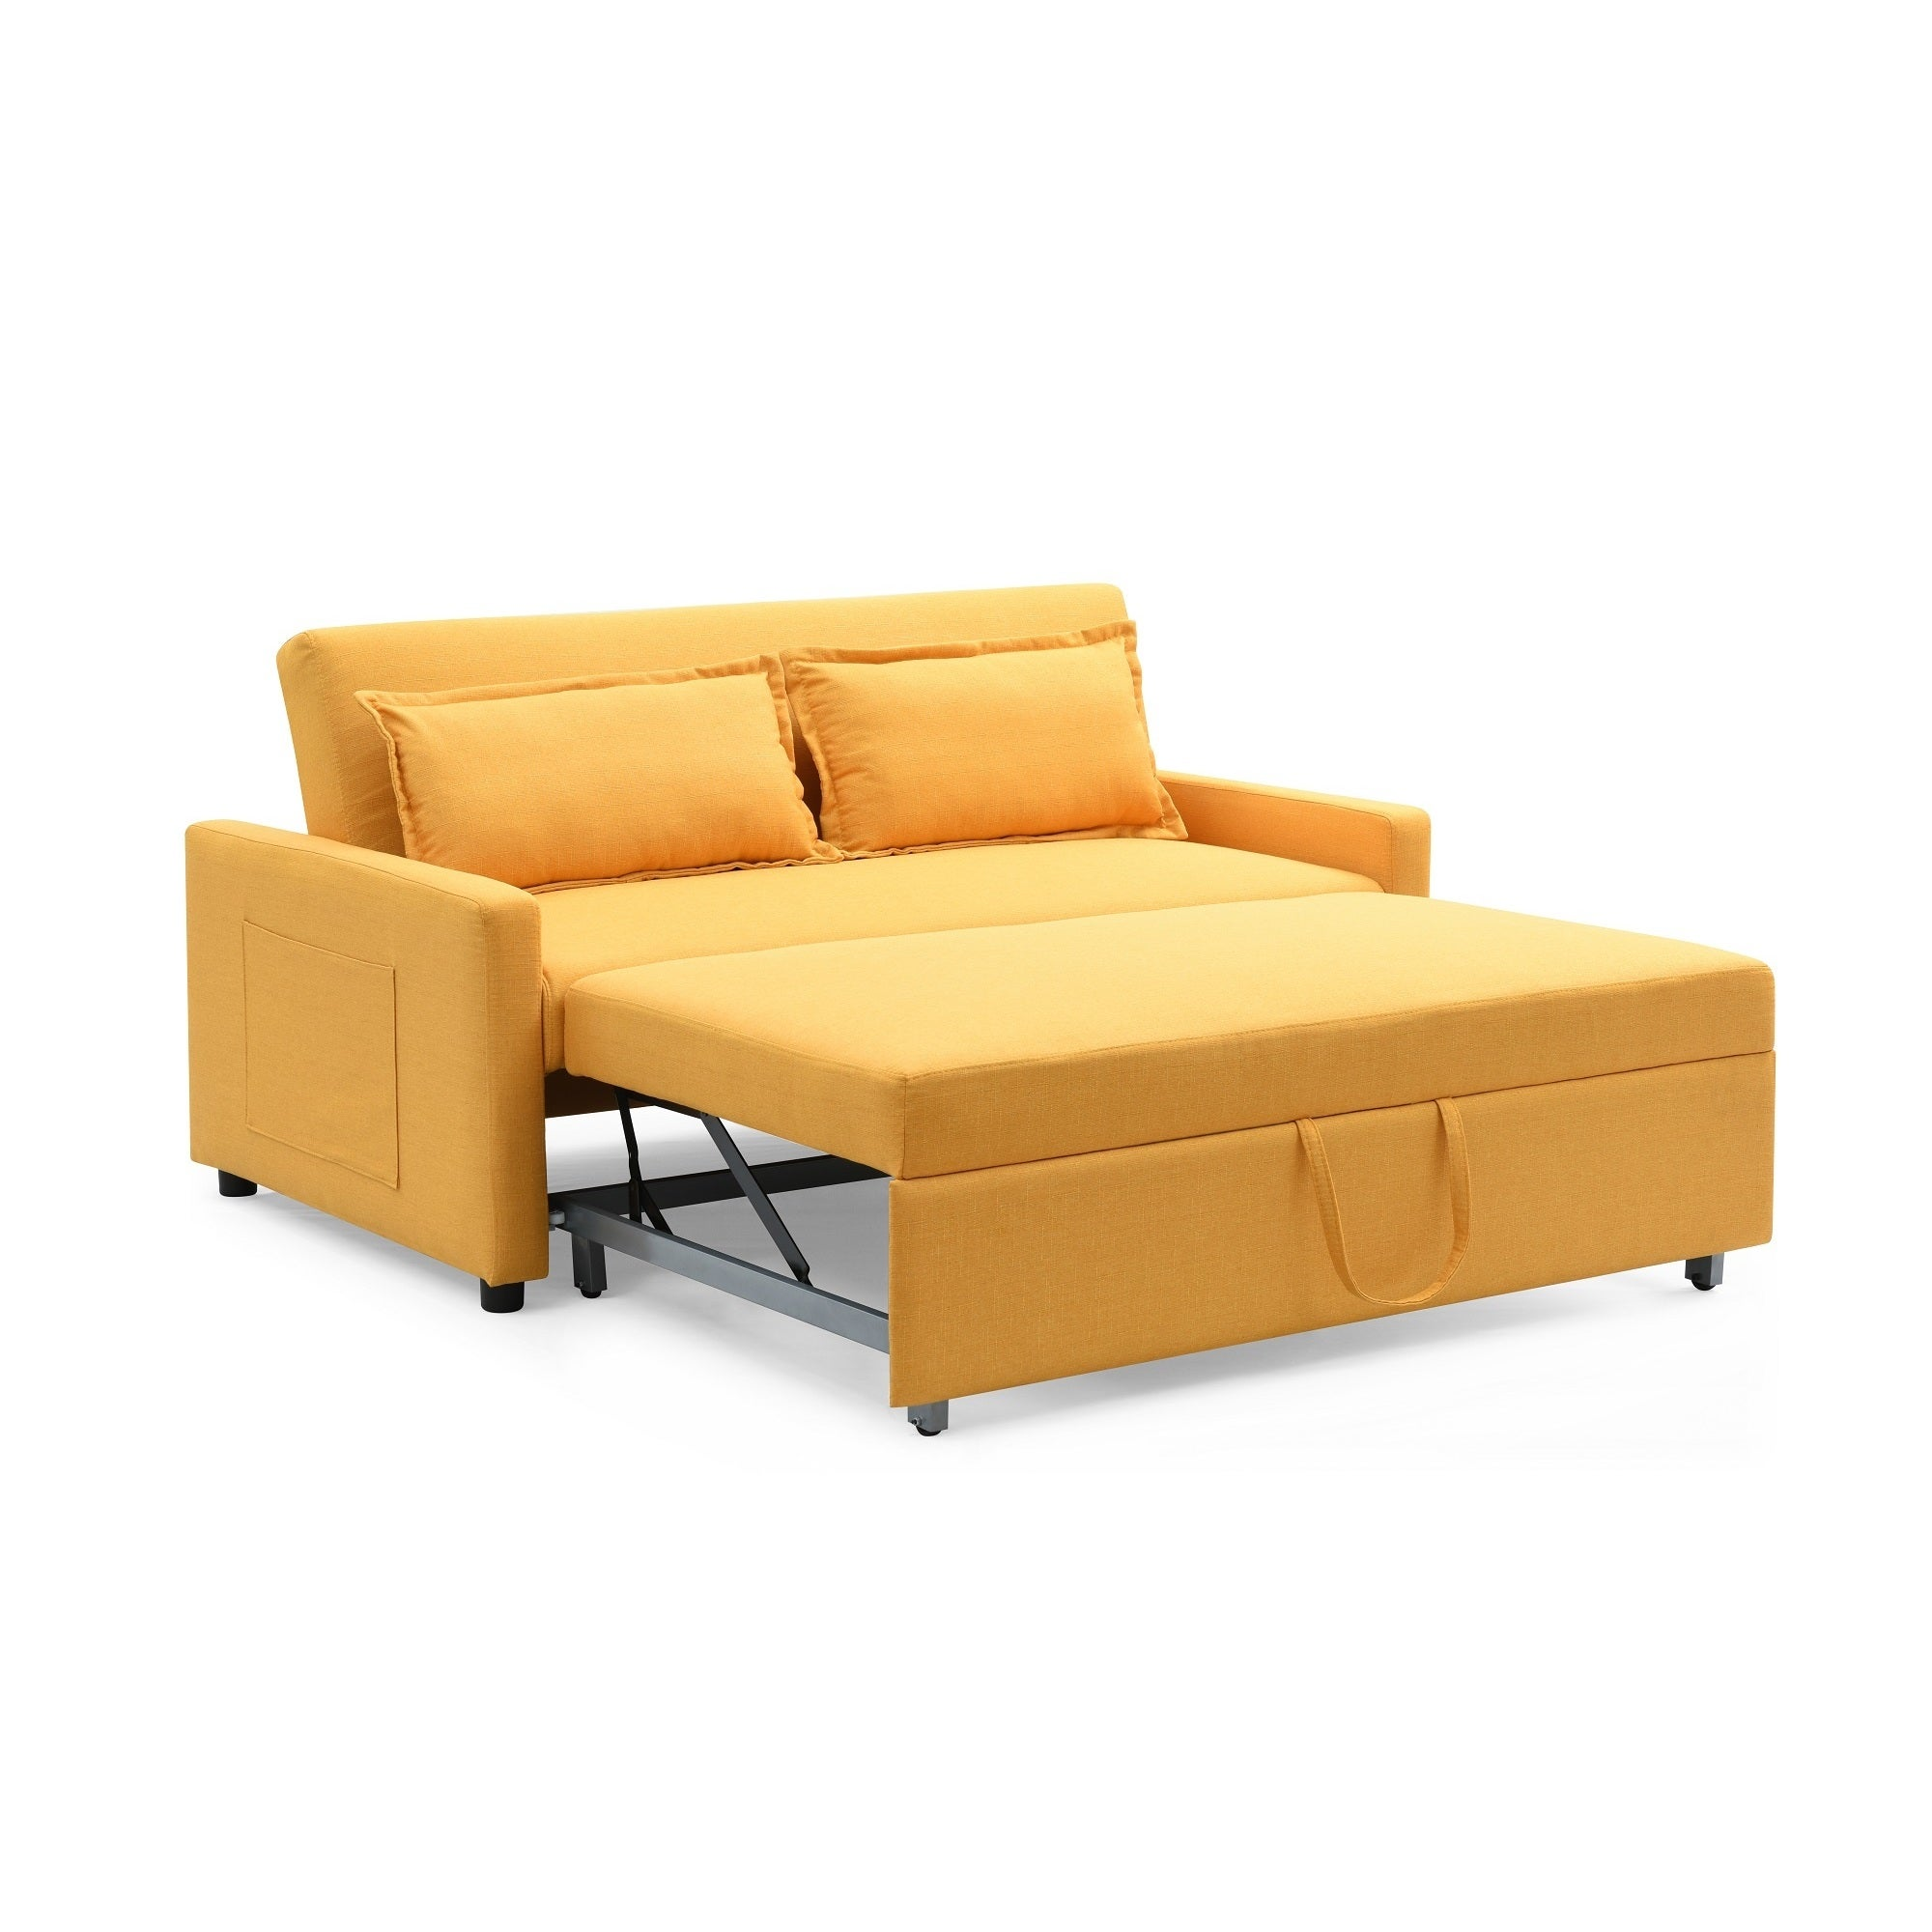 Porch & Den Prado Convertible Sofa with Pullout Bed